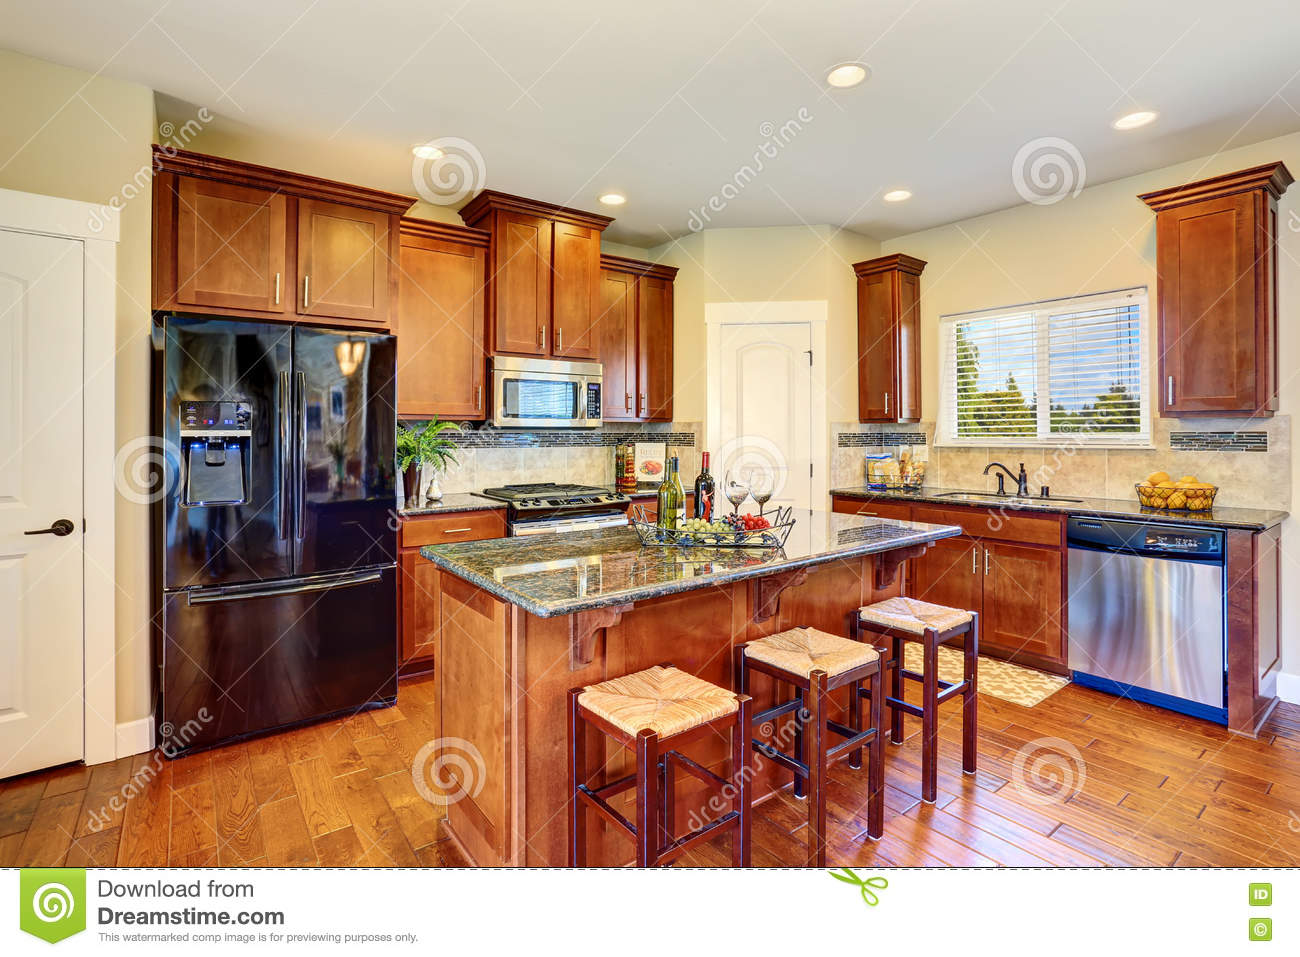 Luxury kitchen room with modern cabinets and granite counter tops stock photo image 75957012 - Luxury kitchen room ...